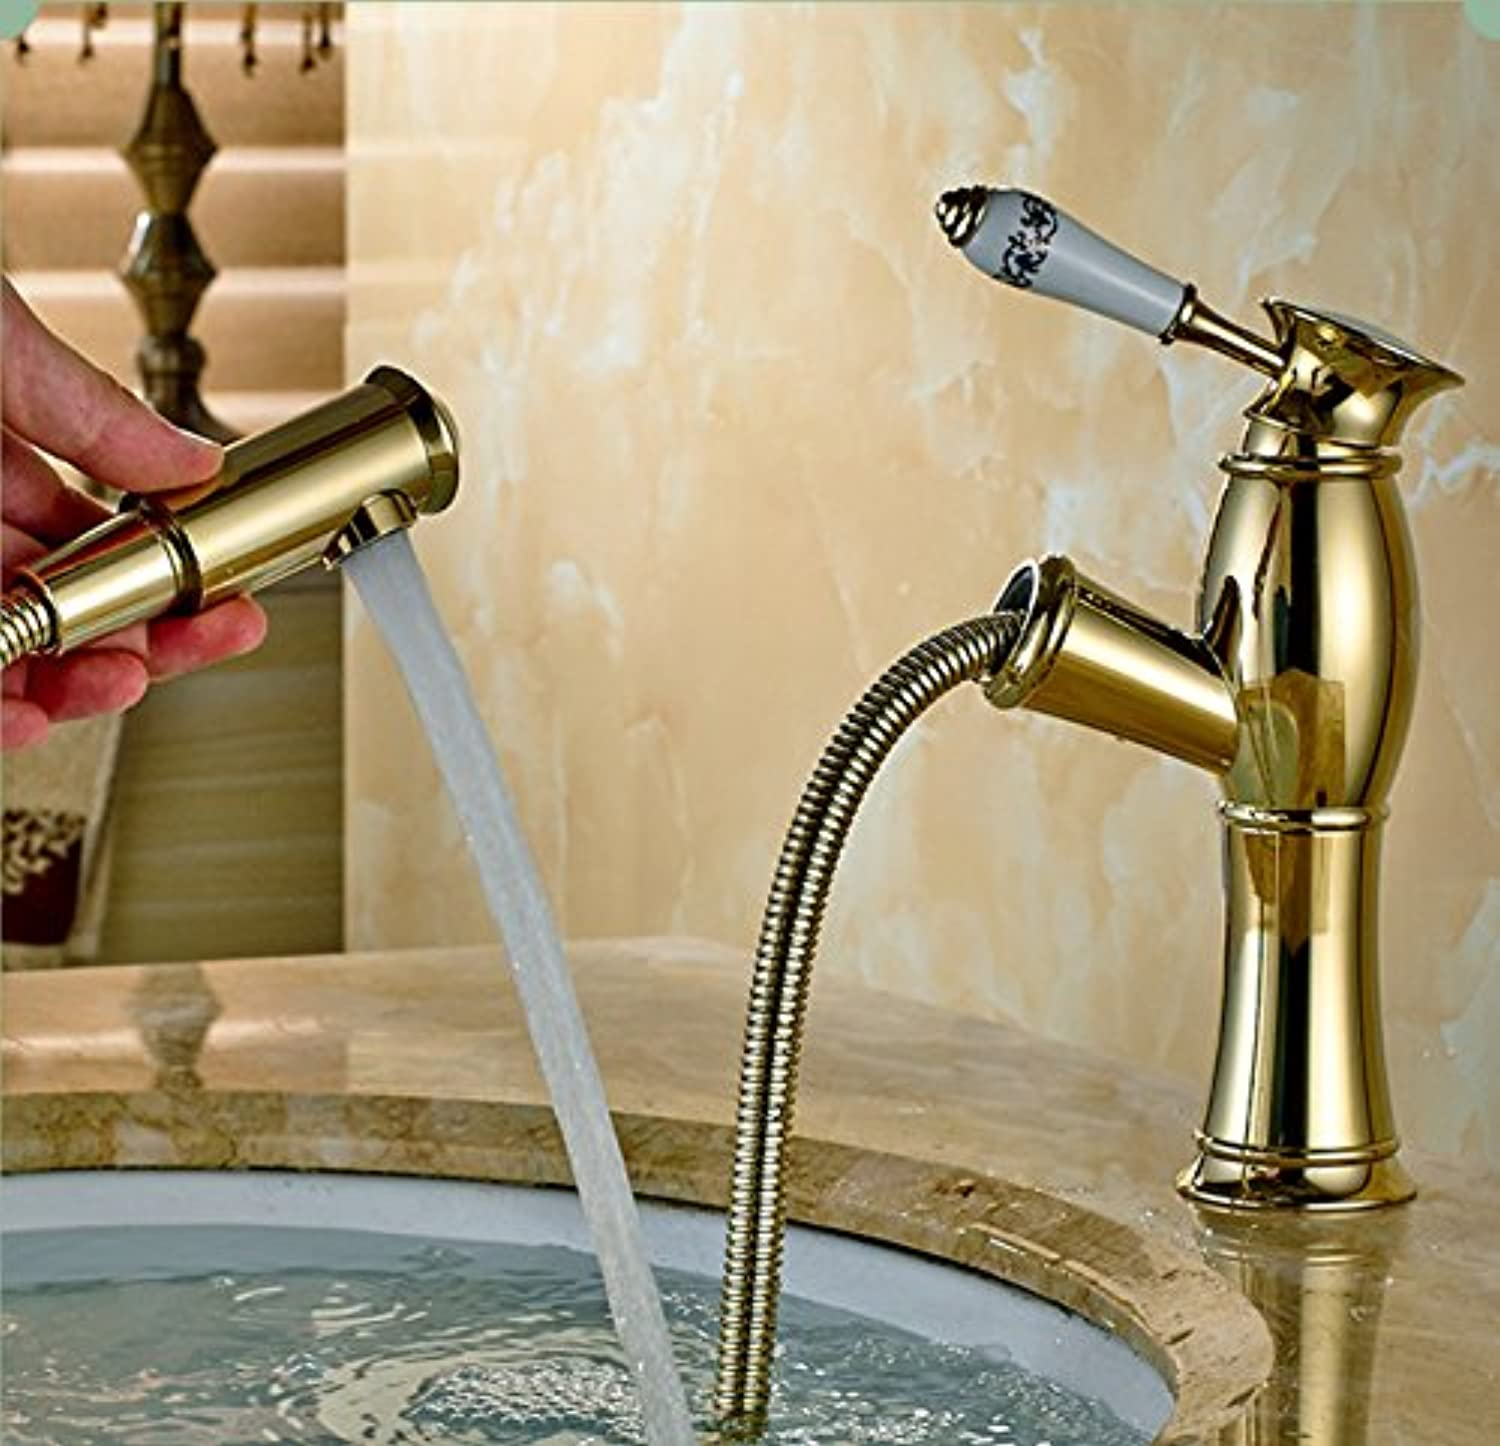 New Pull Out Antique Kitchen Faucet Copper Sink Kitchen Mixer Classica Mixers Faucets Bathroom Fauce gold Aawang